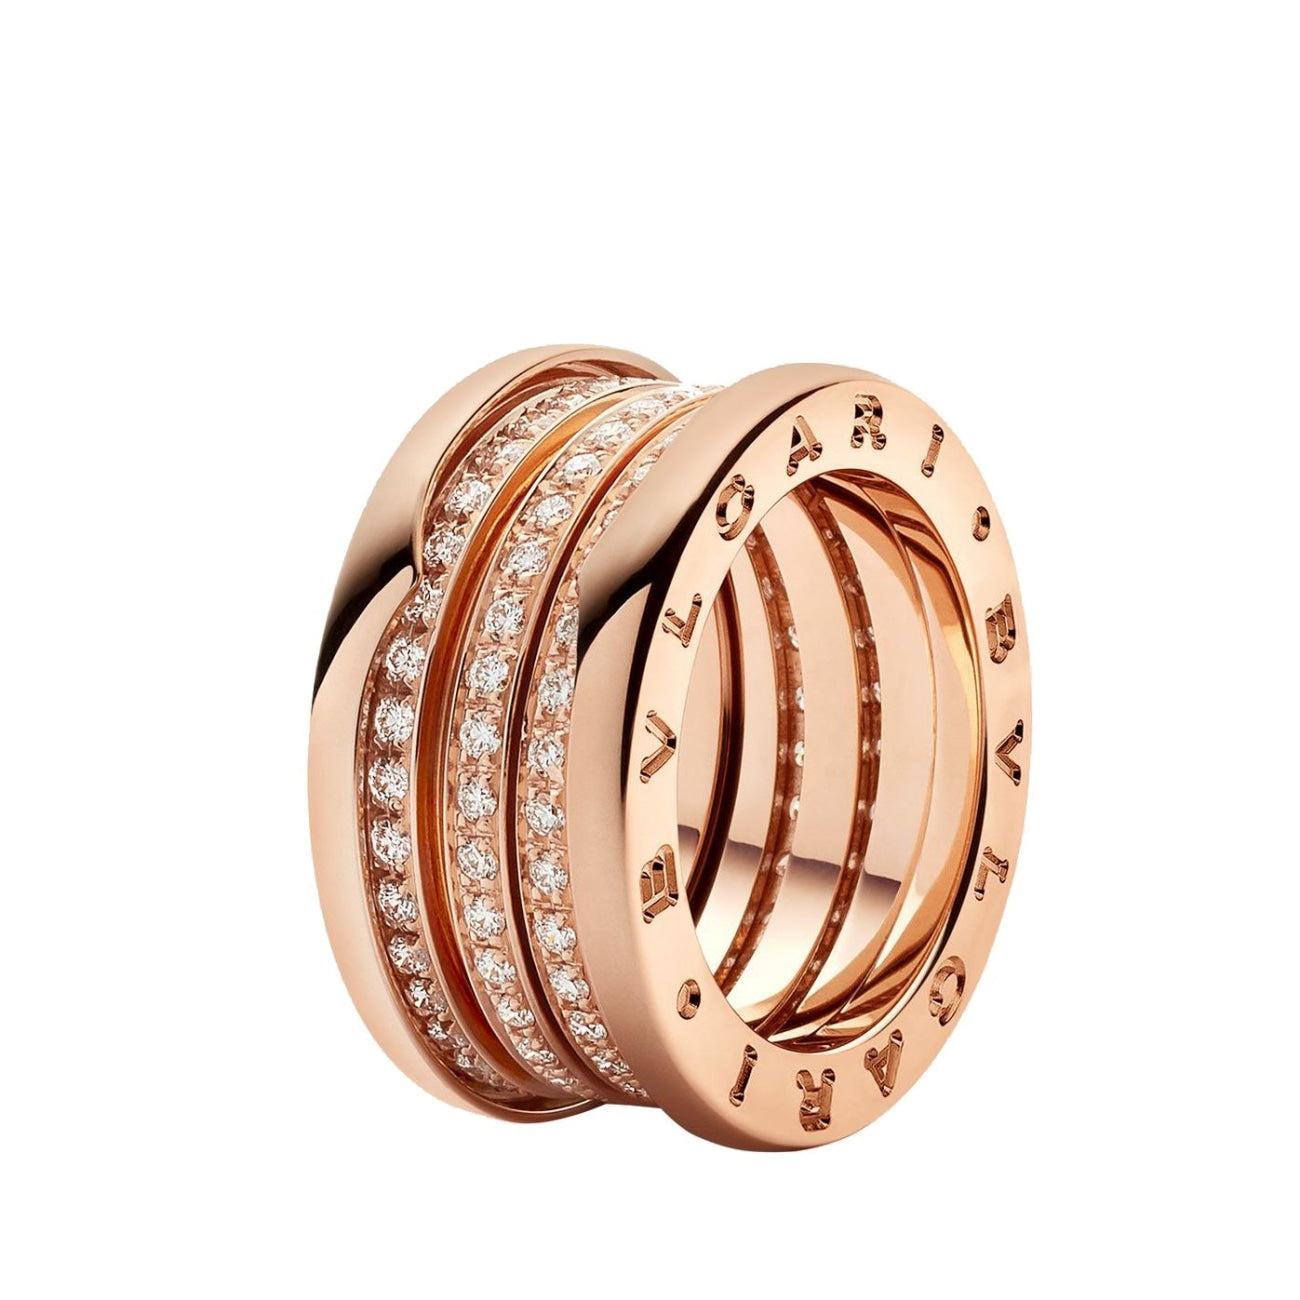 BVLGARI Jewelry - B.ZERO1 | Manfredi Jewels